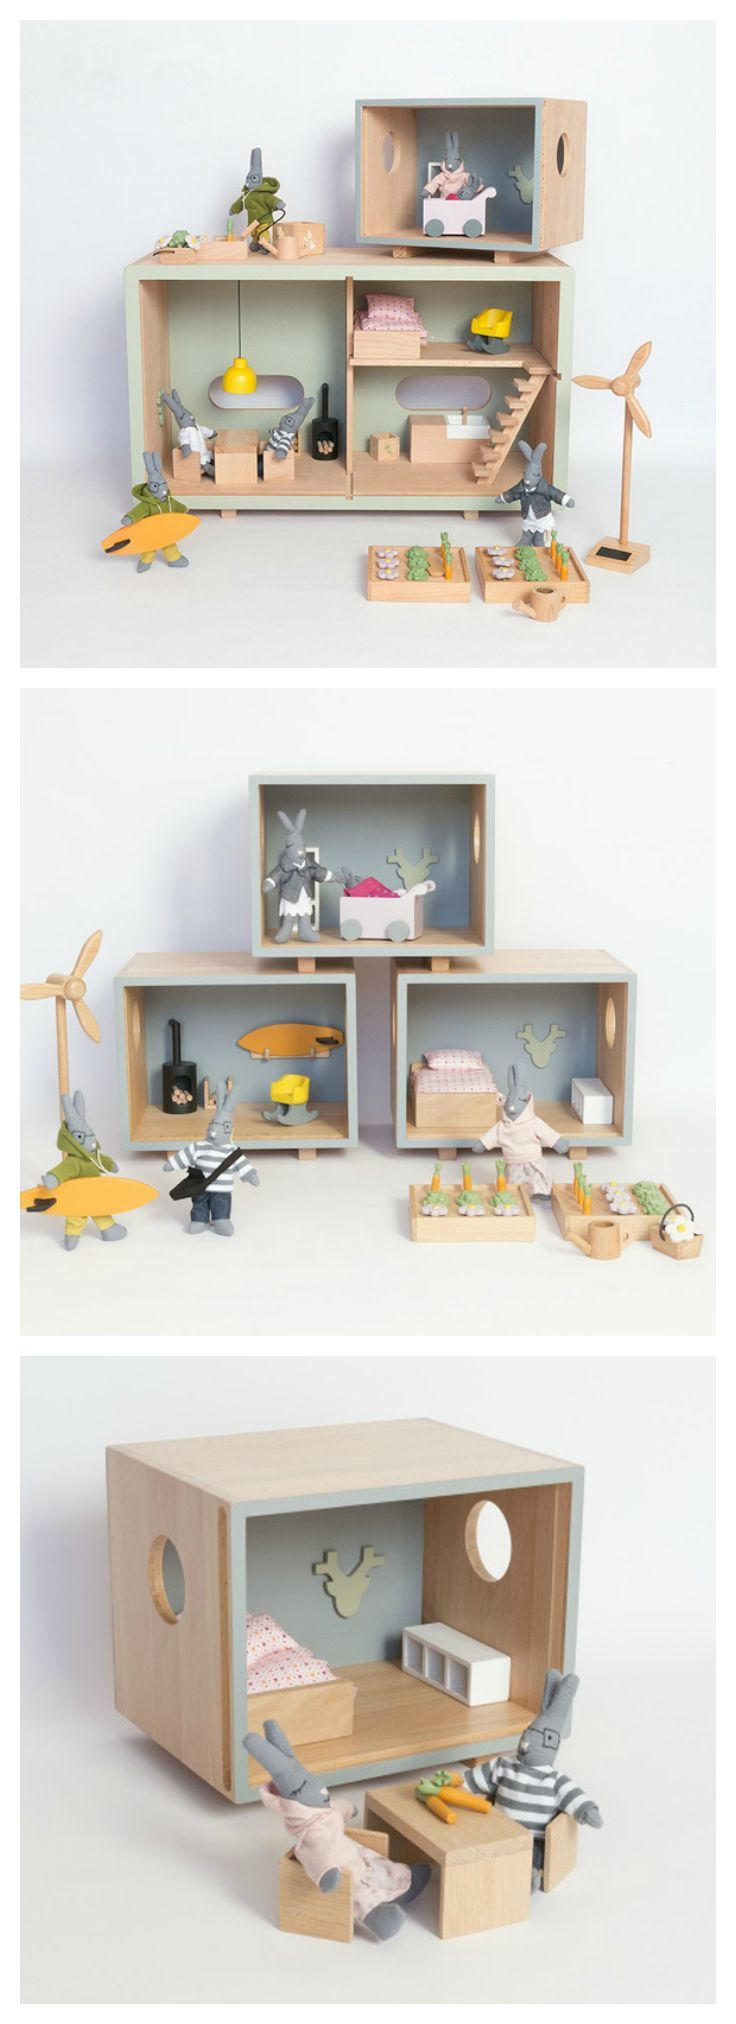 http://www.besttoywebsites.com/category/board-games/ http://www.toysstoresonline.com/category/baby-toys/ Ecological Wooden Toys